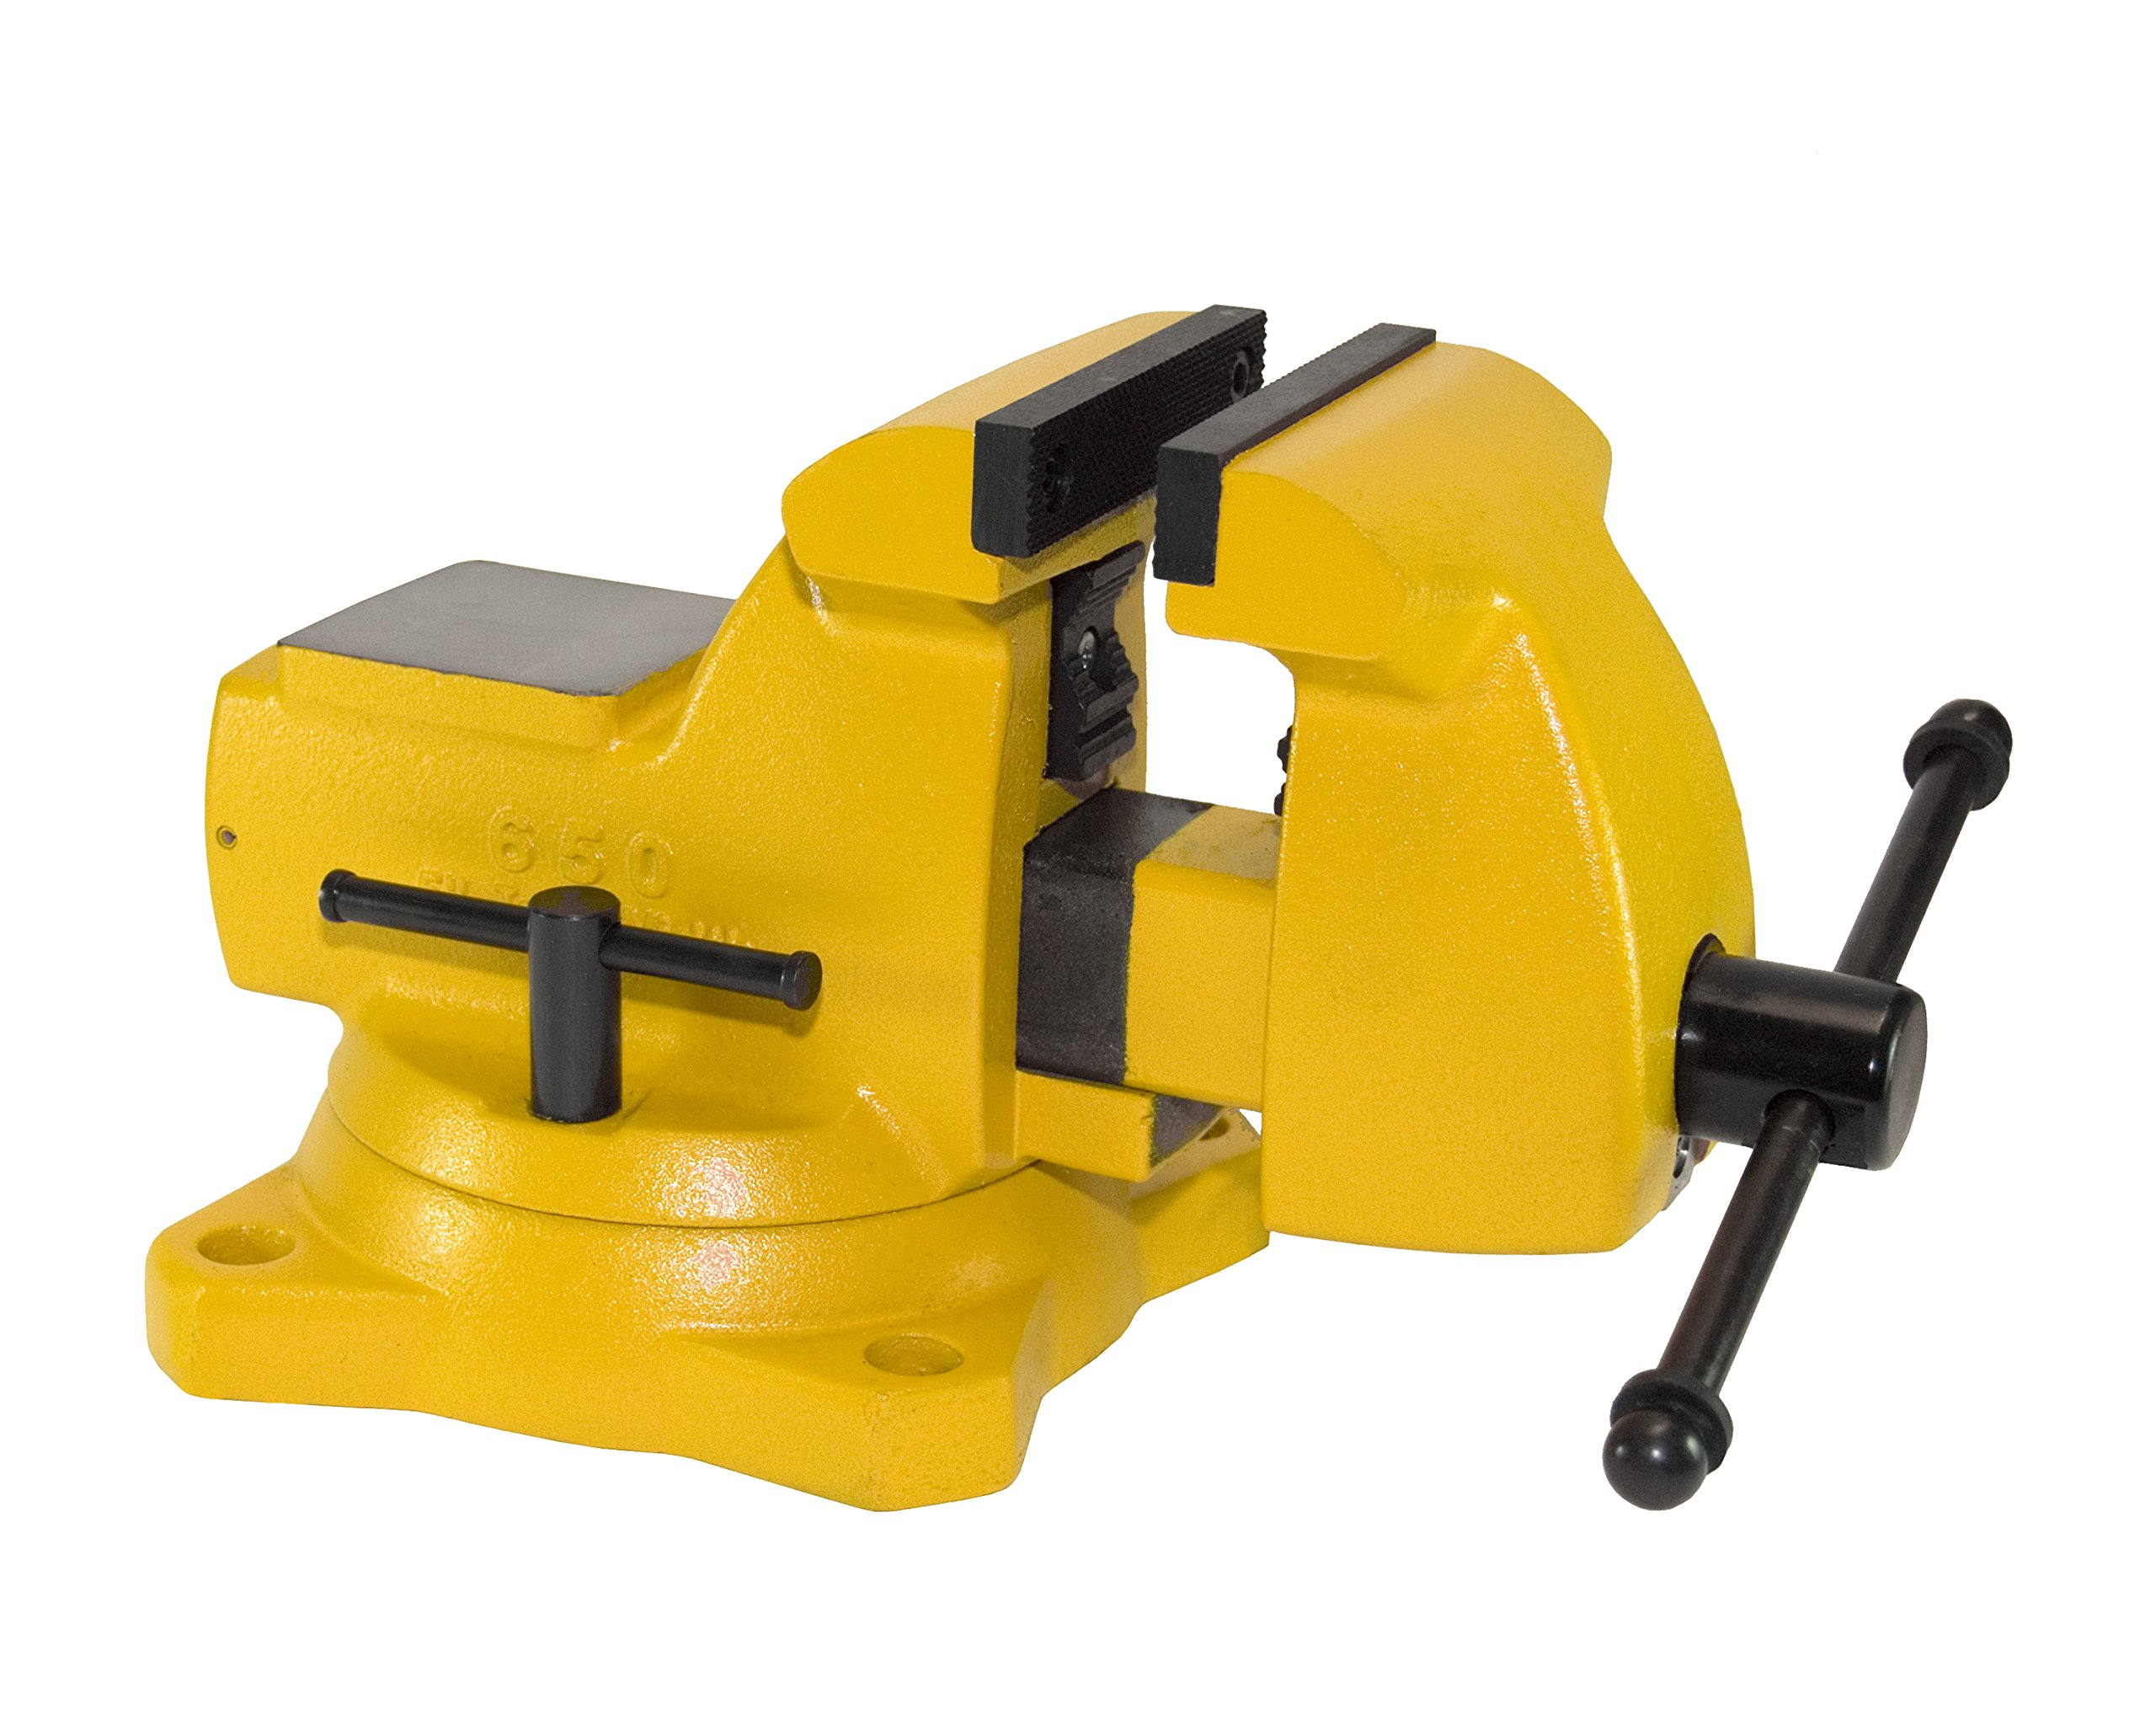 Yost Vises 650-HV 5'' High-Visibility Combination Pipe and Bench Mechanics Vise with 360-Degree Swivel Base